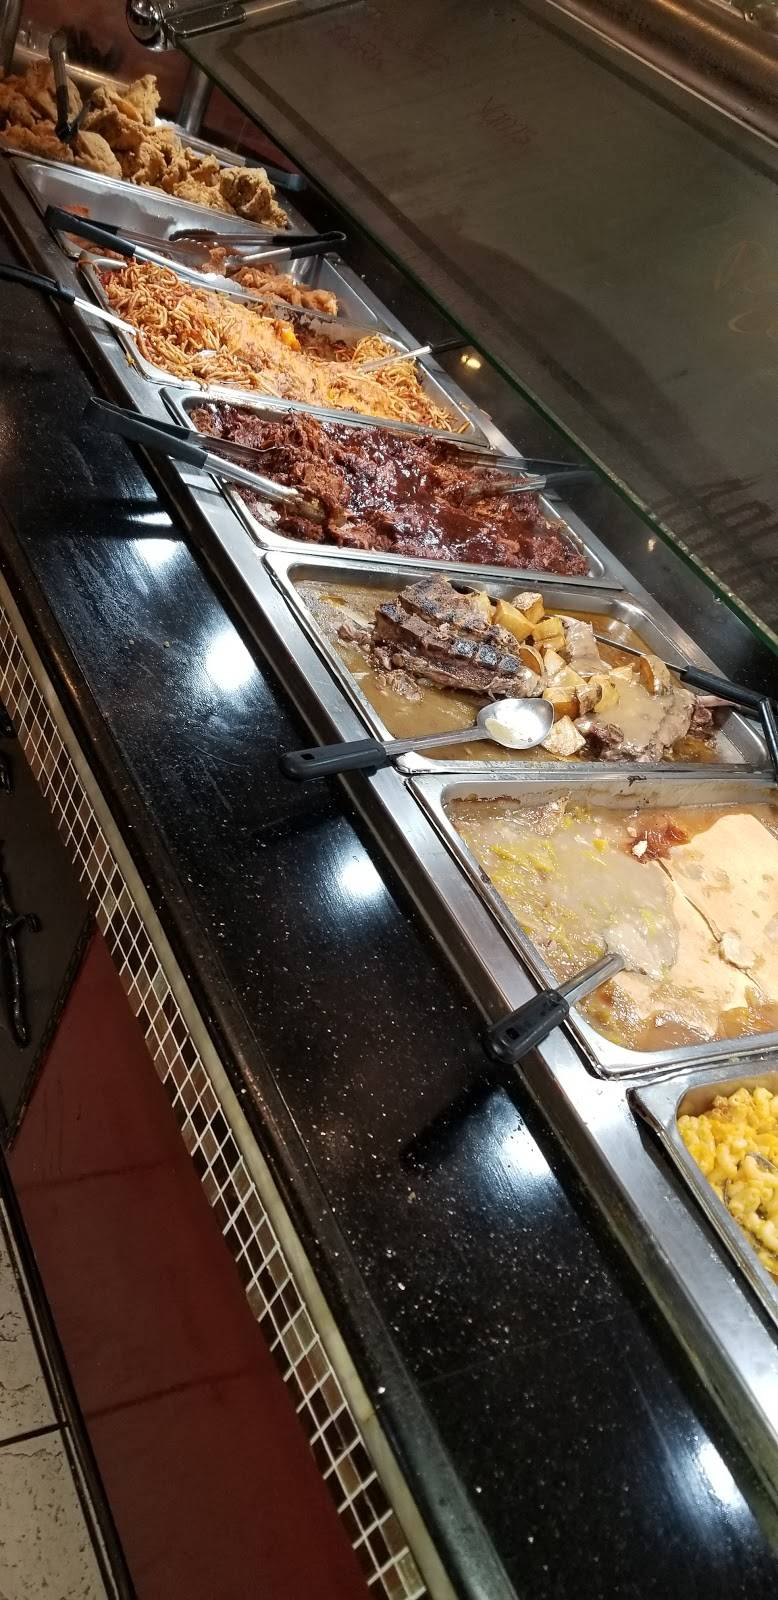 Home Cooking Buffet To Go | restaurant | 4790 Jonesboro Rd St. C, Union City, GA 30291, USA | 7709698664 OR +1 770-969-8664